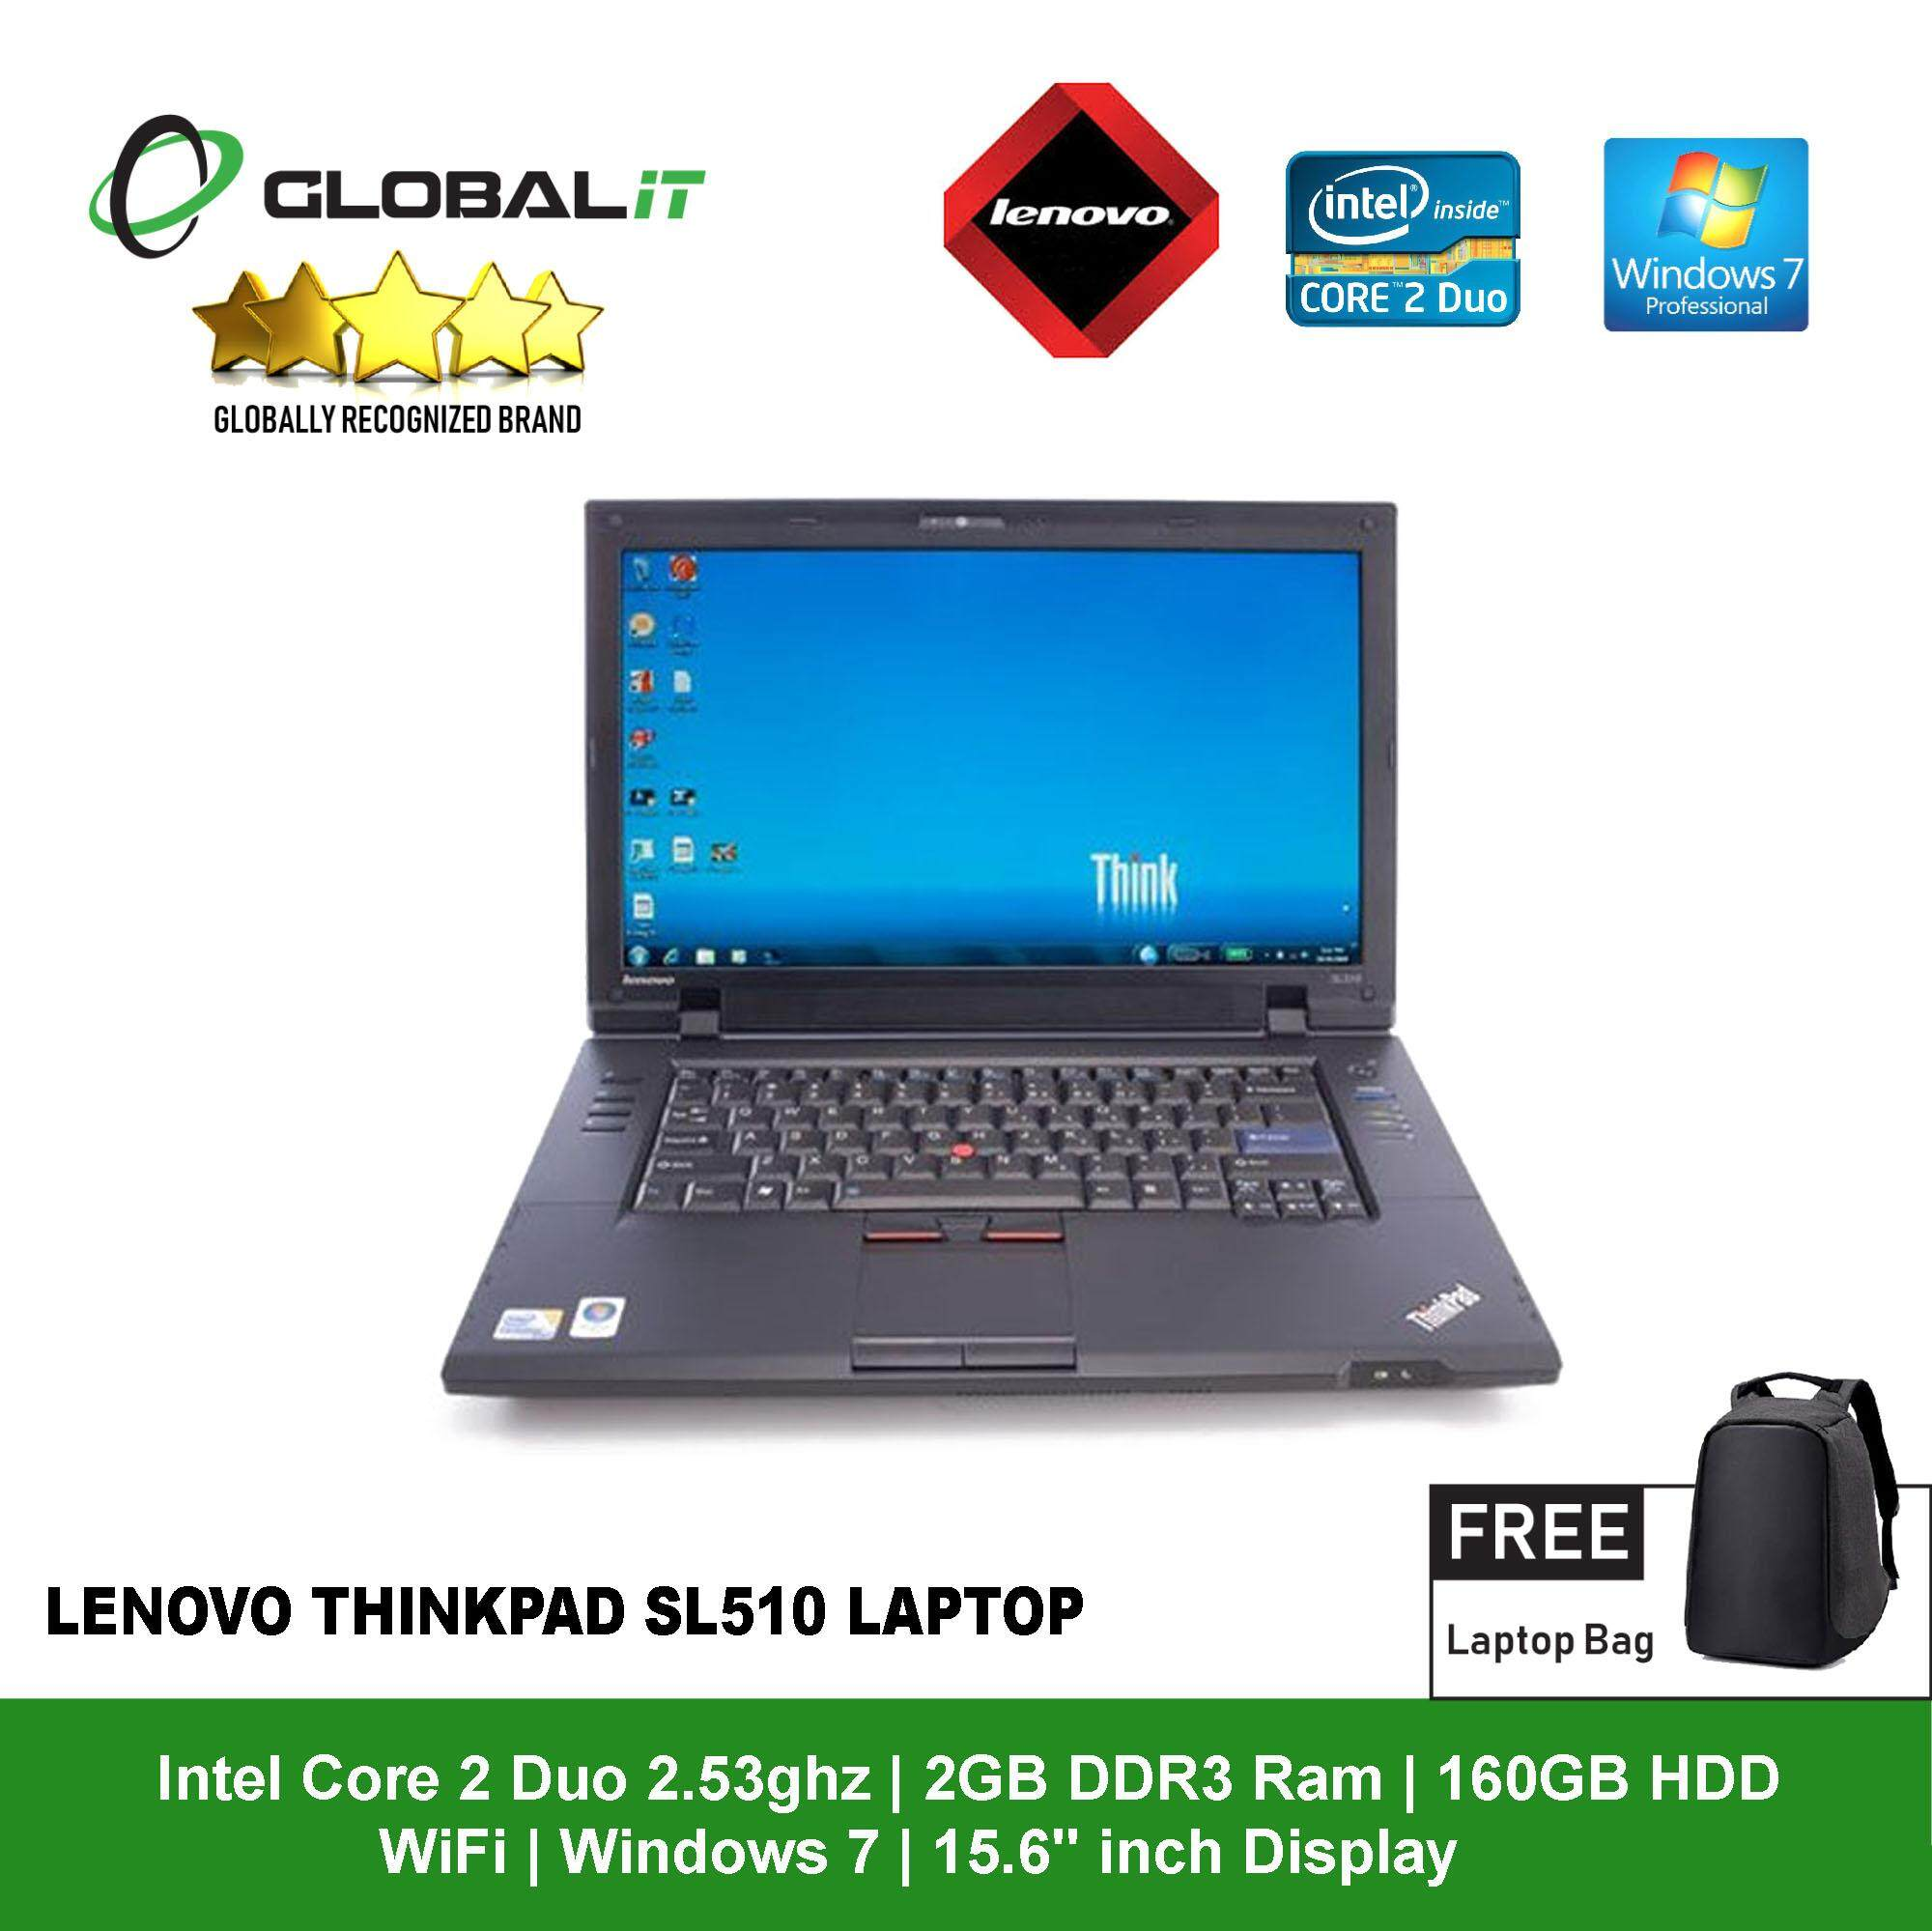 (Refurbished Notebook) Lenovo Thinkpad SL510 Laptop / 15.6 inch LCD / Intel Core 2 Duo / 2GB DDR3 Ram / 160GB HDD / WiFi / Windows 7 Pro Malaysia